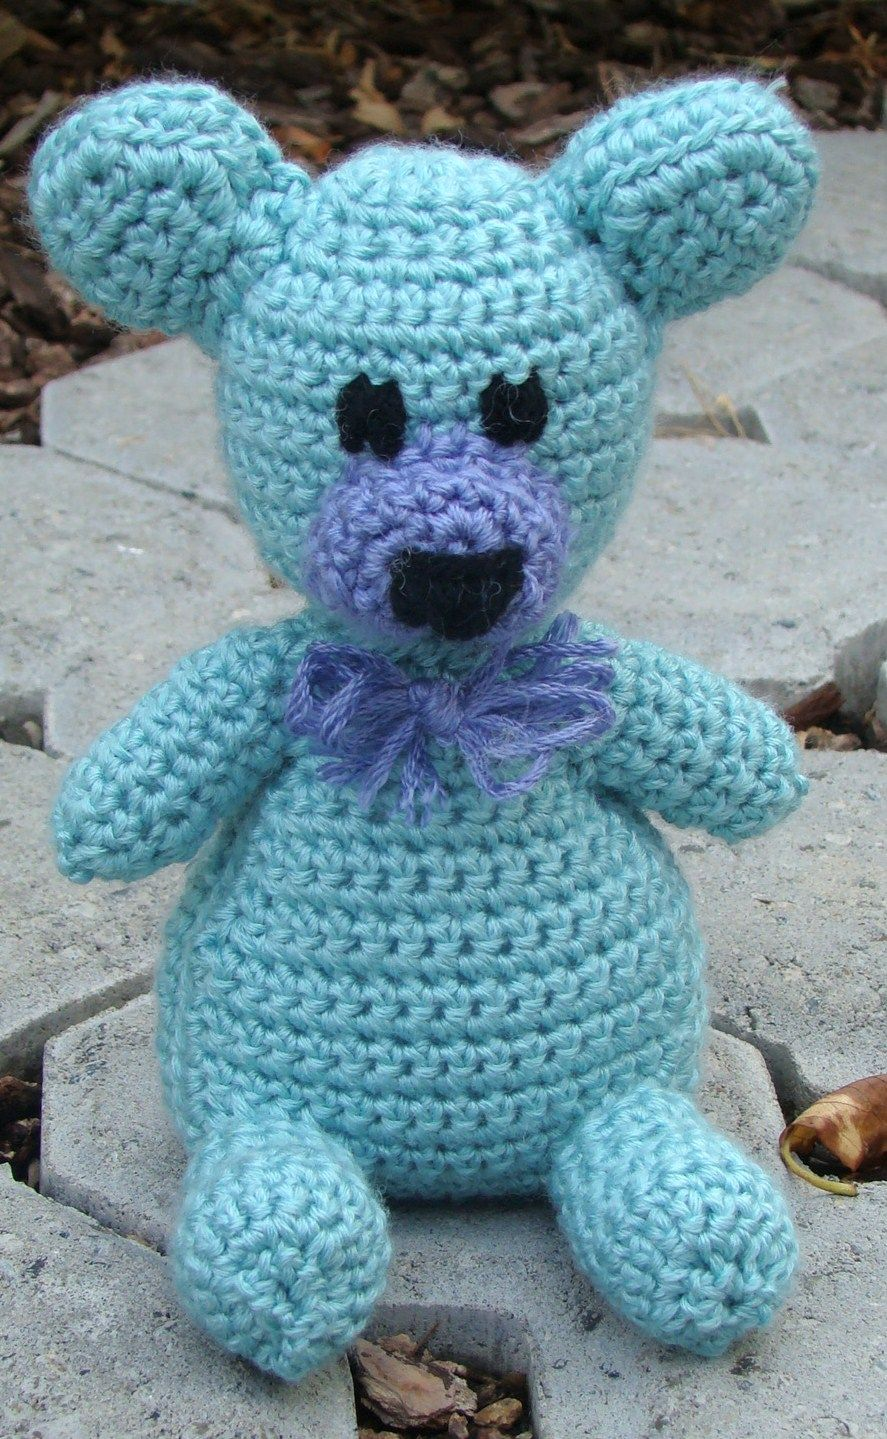 Free Crochet Patterns! This Crochet Animal makes for great gifts ...